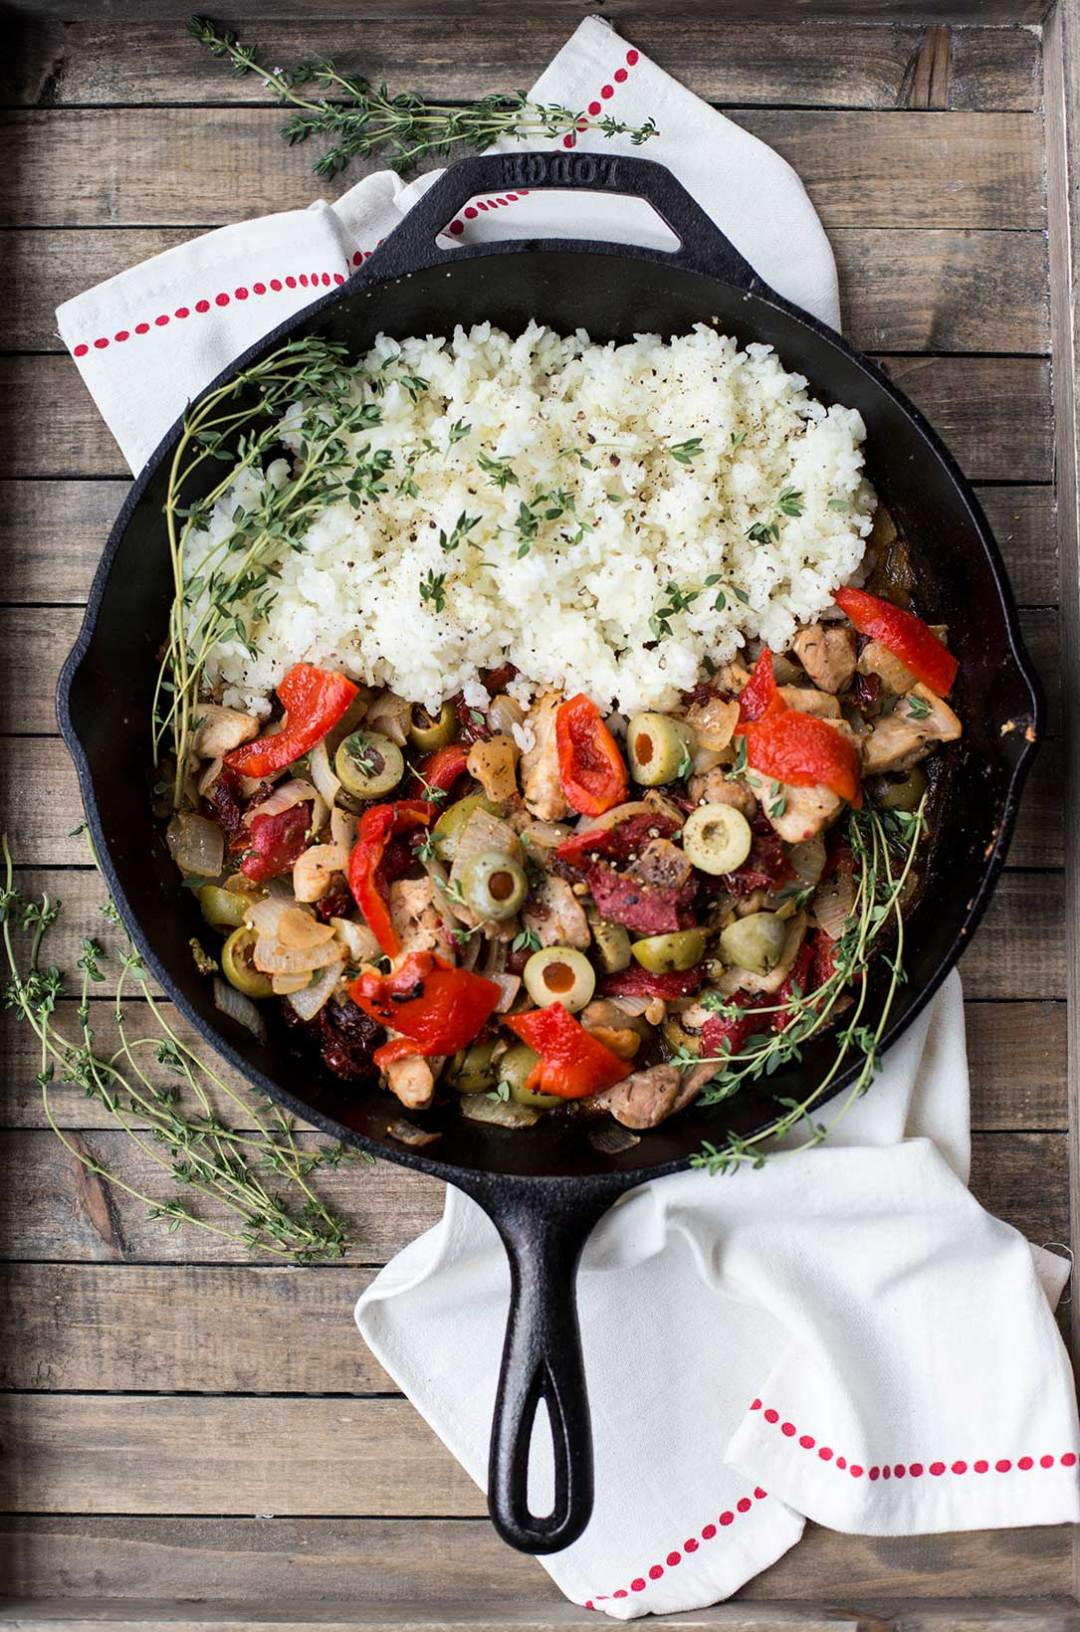 Portuguese Chicken and Rice: Chicken pieces sautéed with onions, mushrooms, peppers and sun-dried tomatoes make the perfect dinner in a pan! Add some green olives and lemon zest for authentic Portuguese flavor.